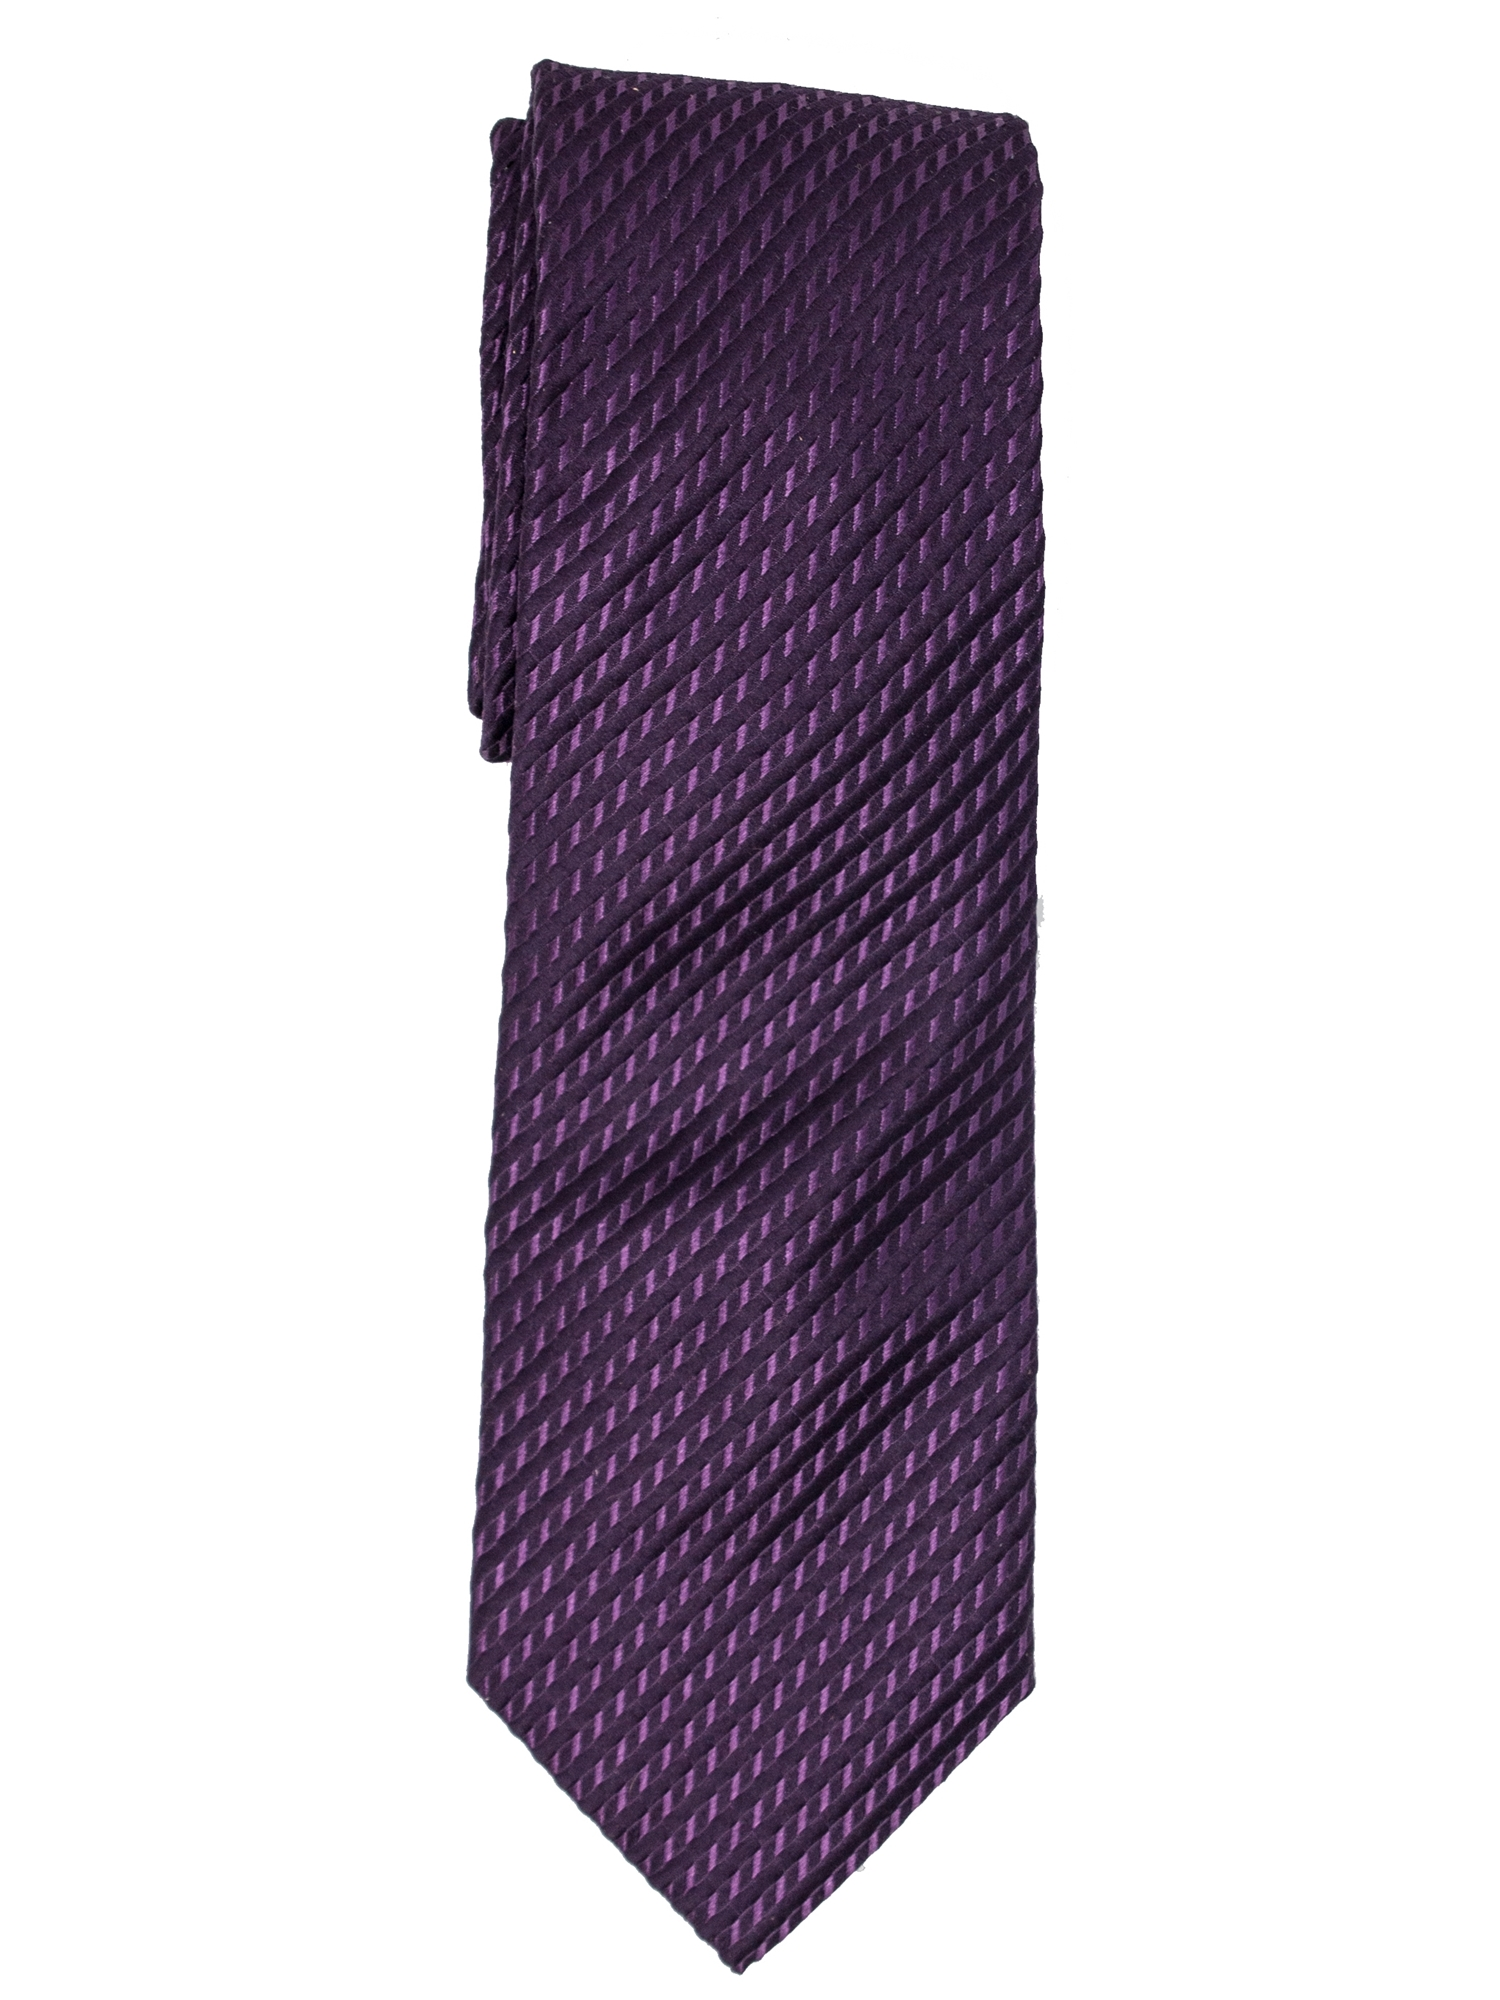 Men/'s 100/% Silk Woven Wedding Neck Tie Collection